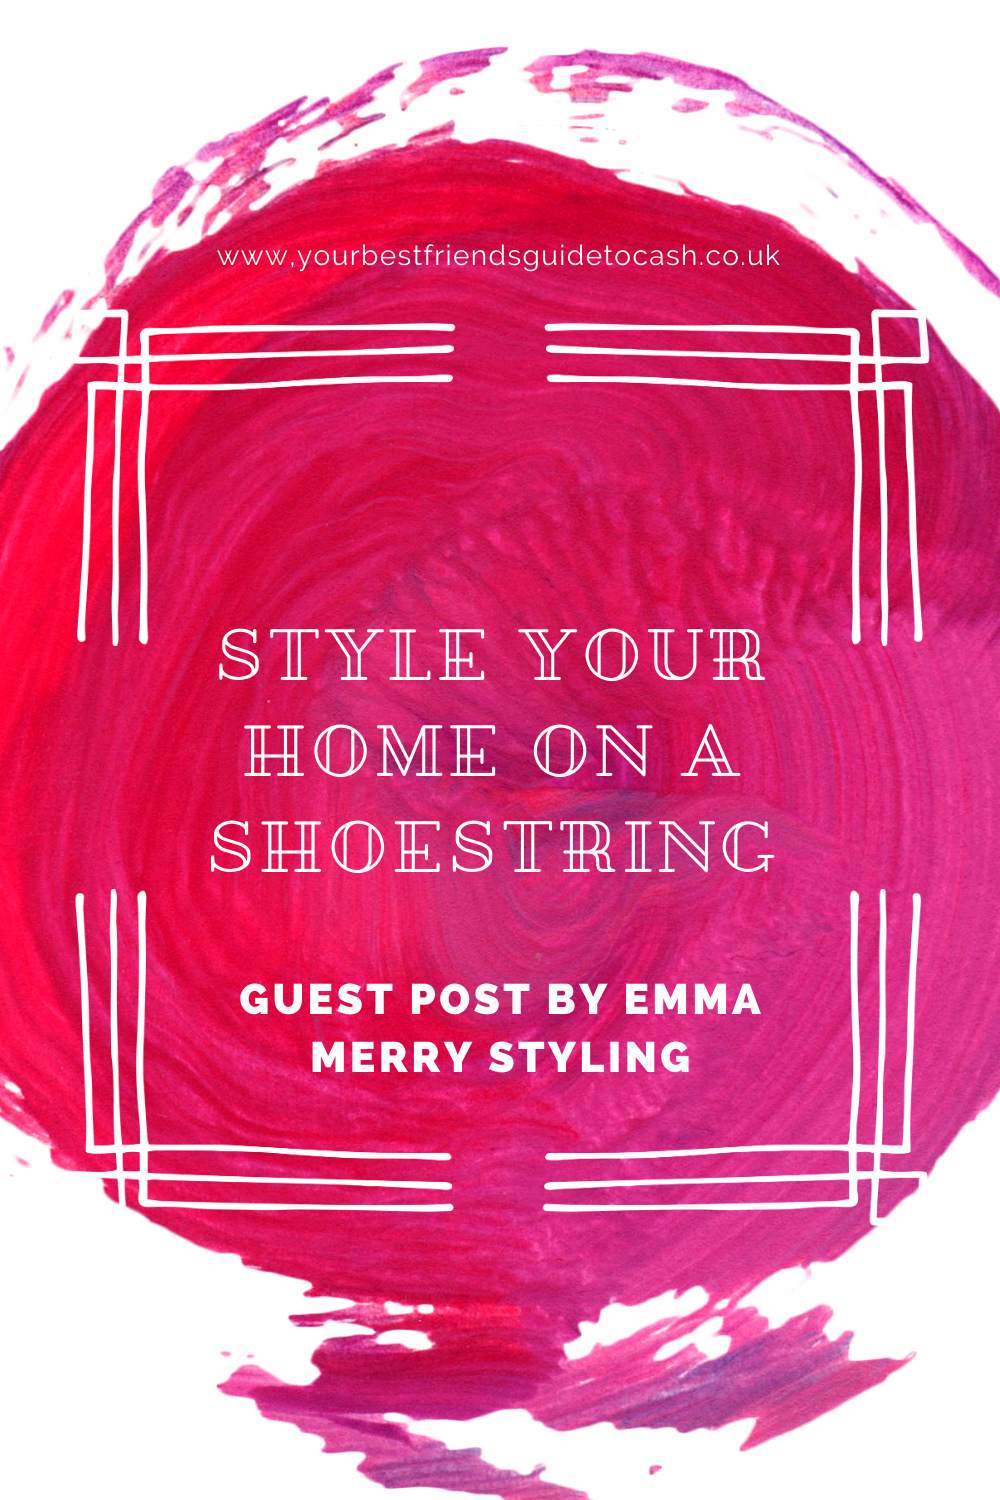 Insider tips: style your home on a shoestring